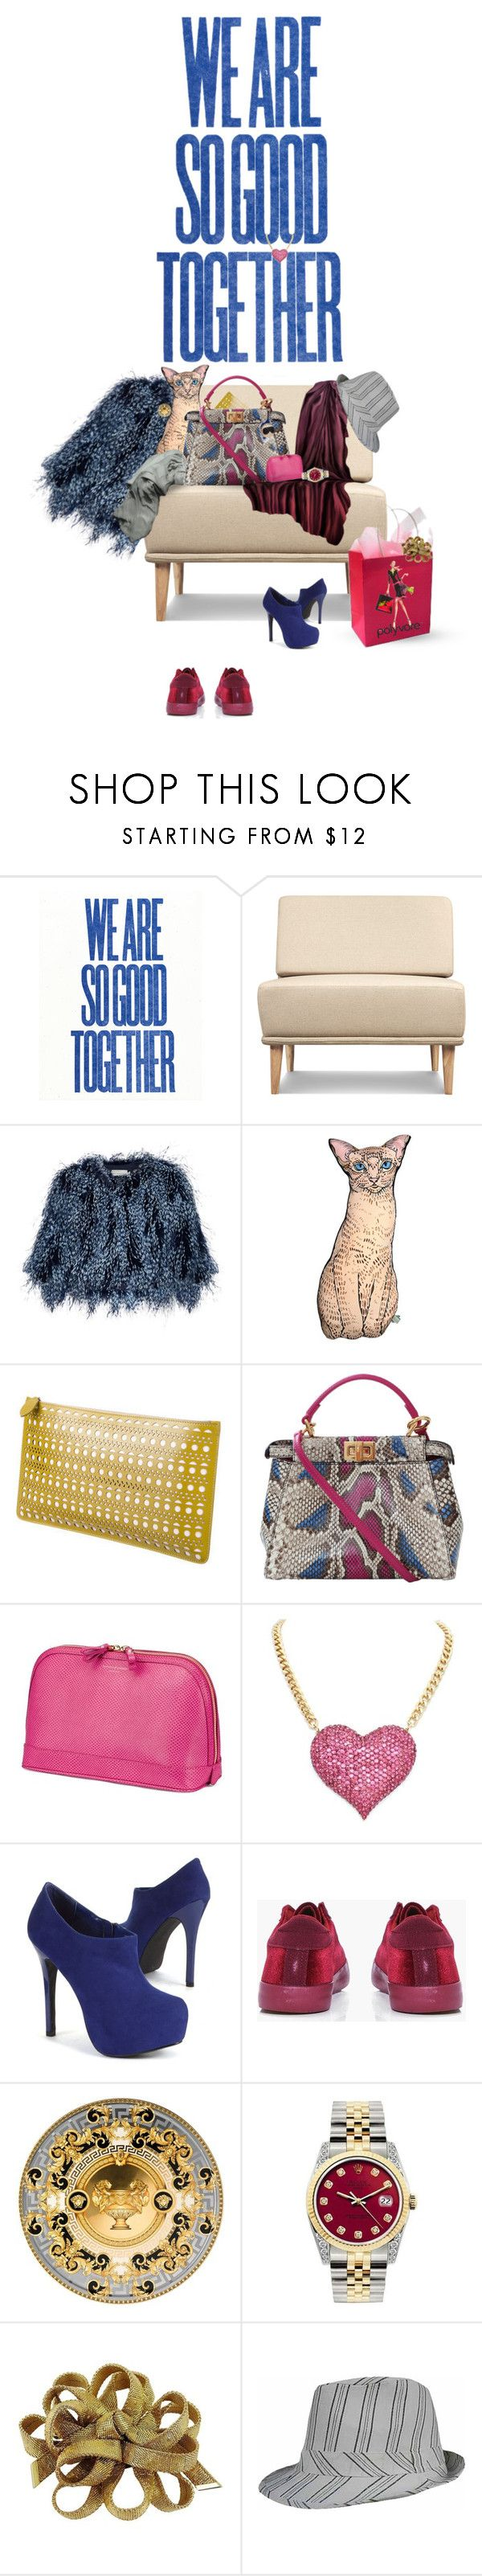 """What shall I wear today?"" by sammie-g ❤ liked on Polyvore featuring Mary Katrantzou, Silken Favours, Alaïa, Fendi, Aspinal of London, Boohoo, Versace, Rolex, Christian Dior and fendi"